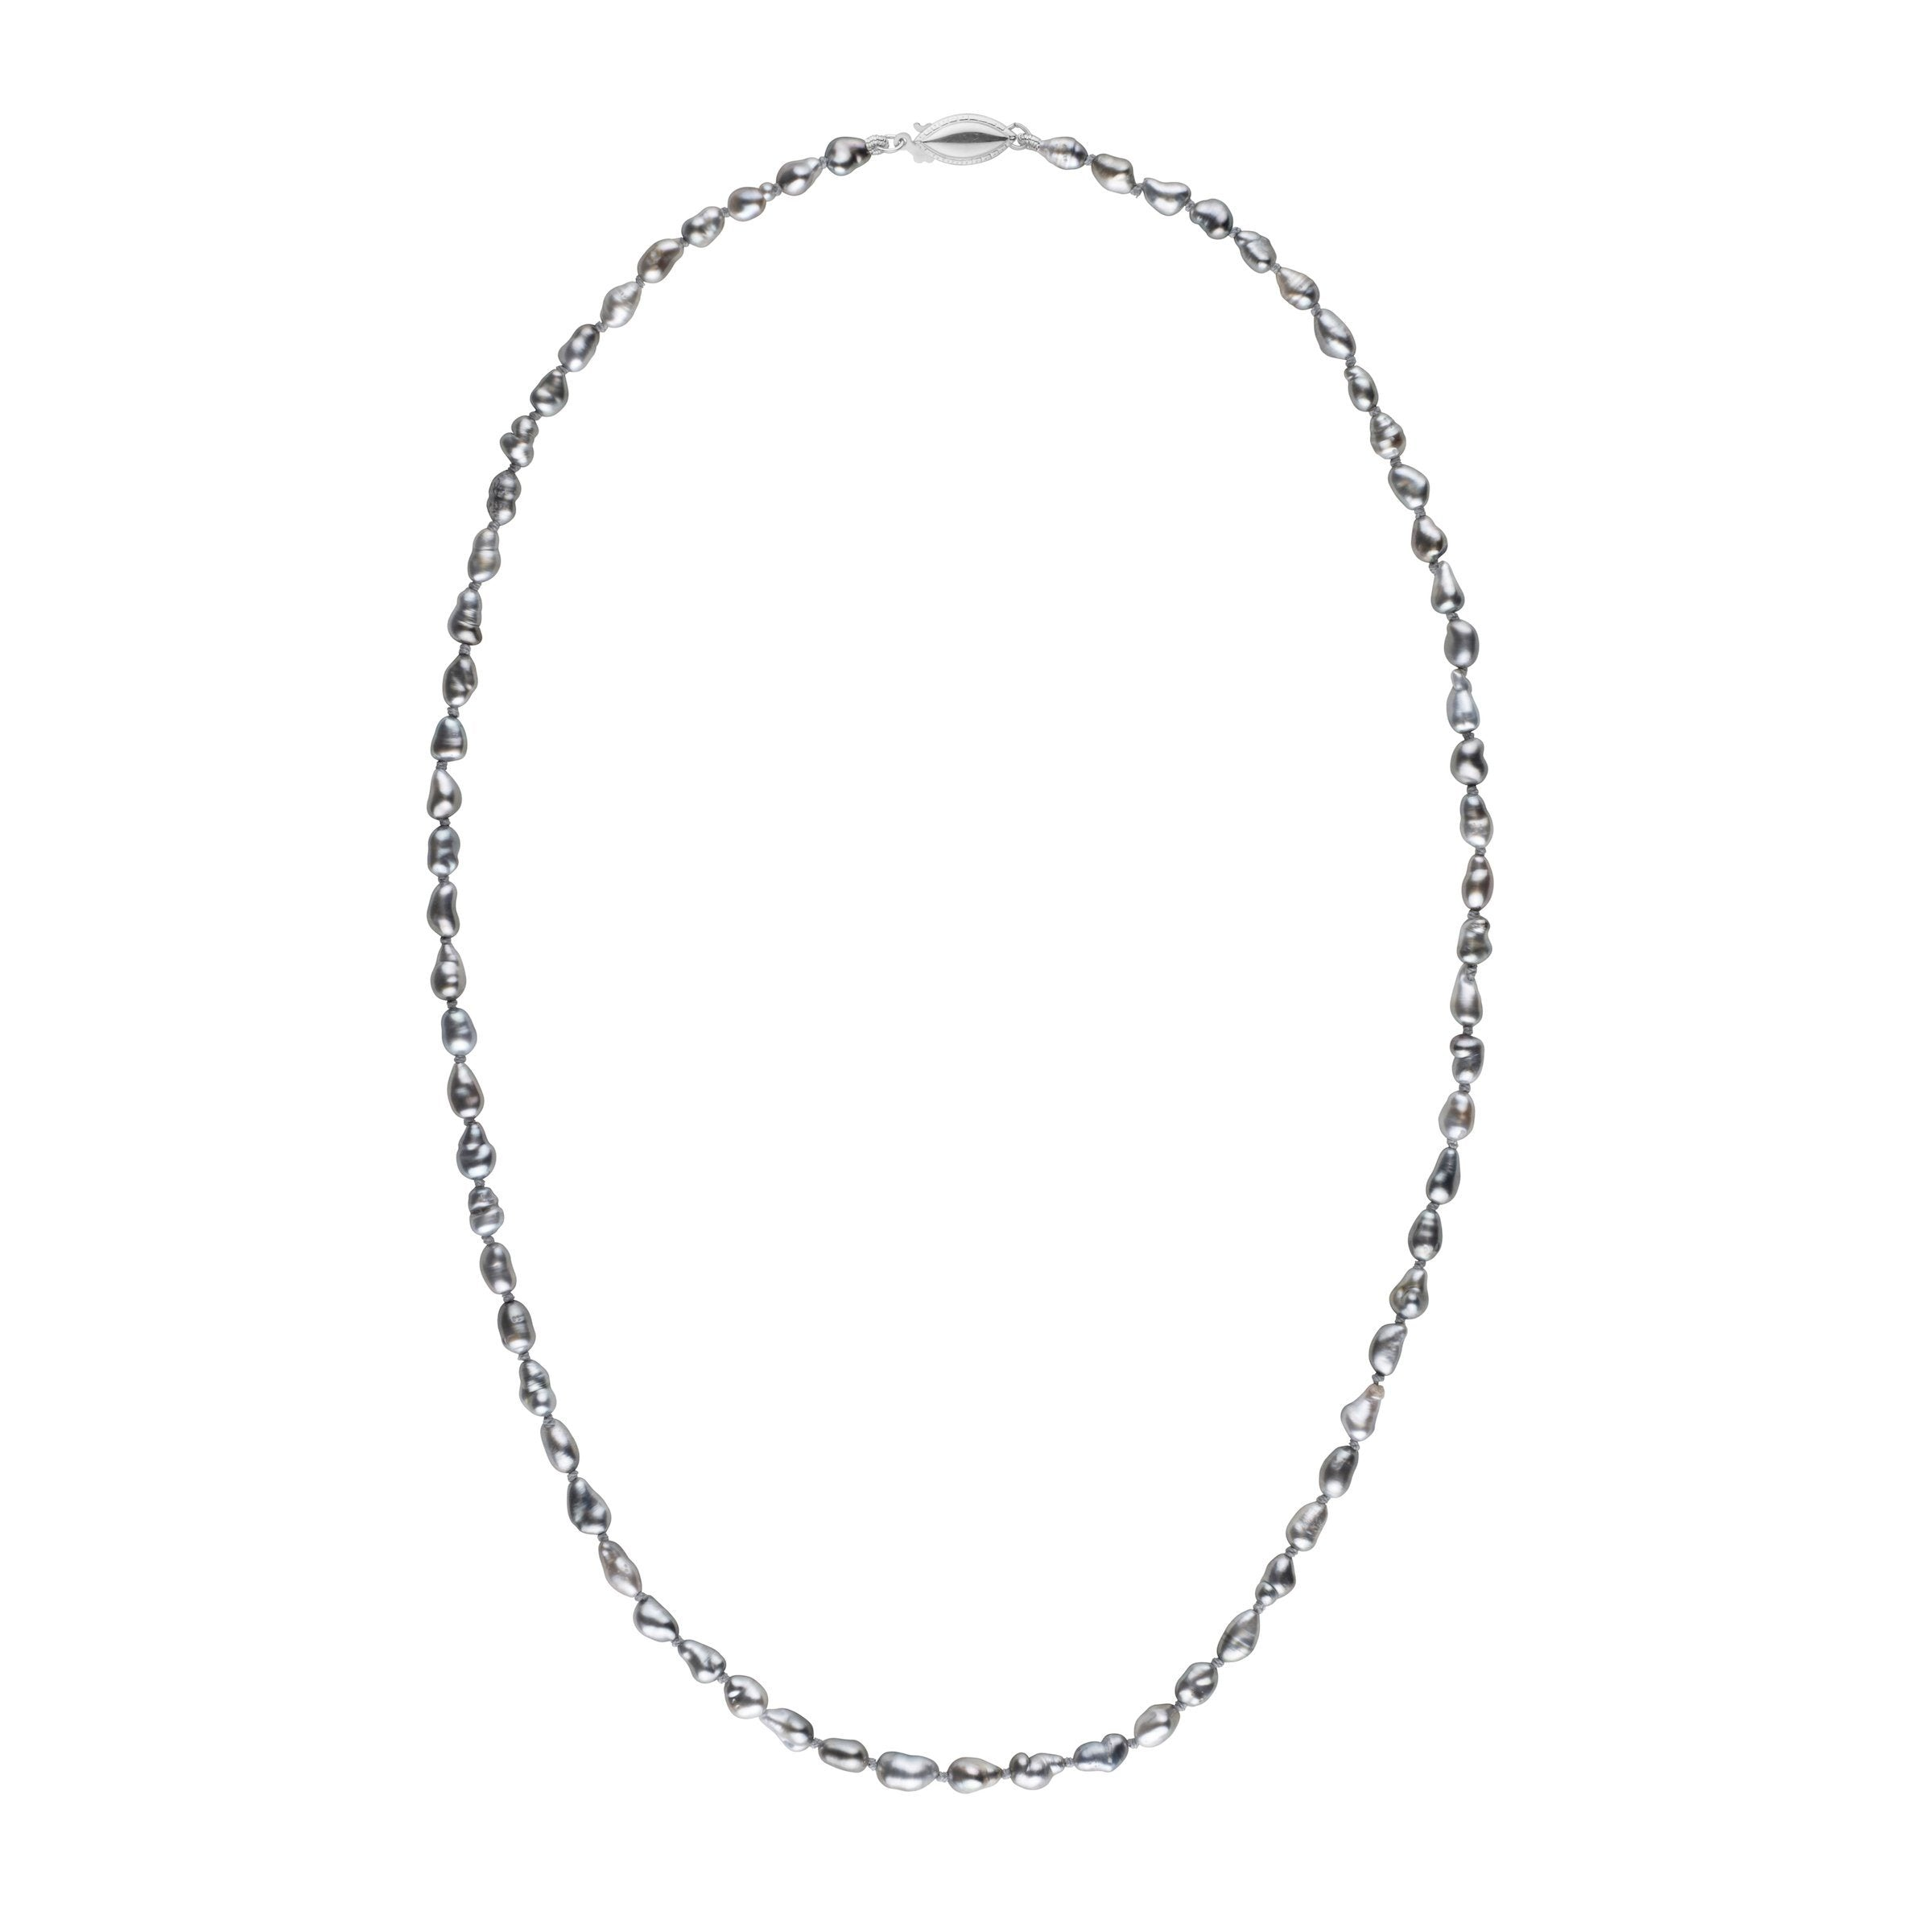 3.0-4.5 mm 18 Inch Keshi Tahitian Pearl Necklace